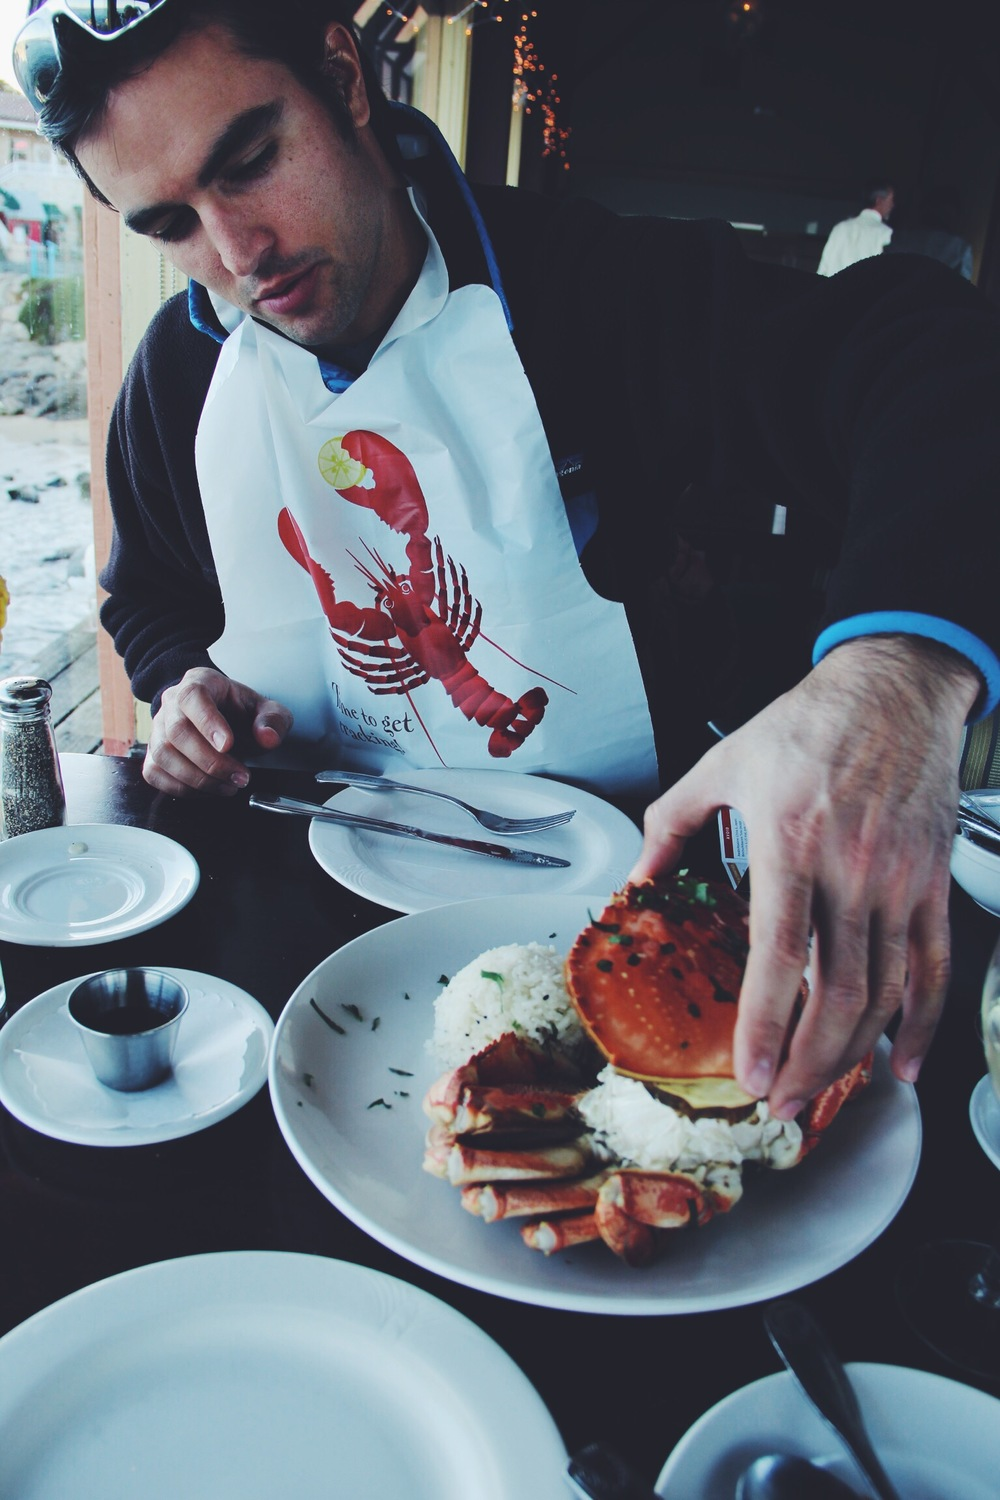 Monterey is known for their Dungeness Crab, so it's only natural to enjoy some while you're there!